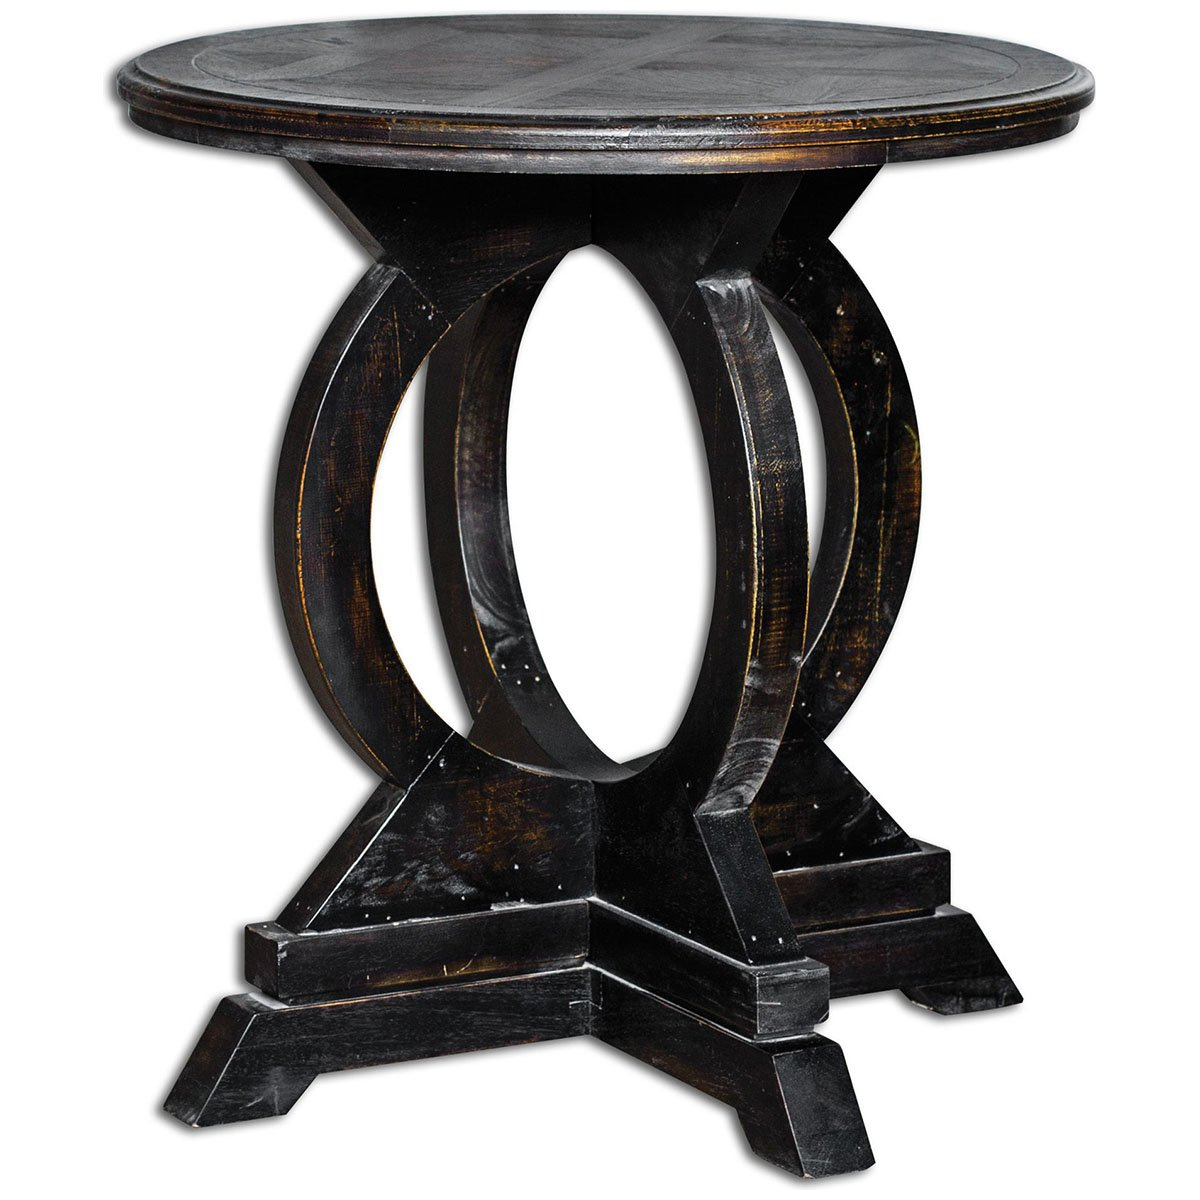 amazon    uttermost 25630 maiva accent table black  kitchen  u0026 dining amazon    uttermost 25630 maiva accent table black  kitchen      rh   amazon